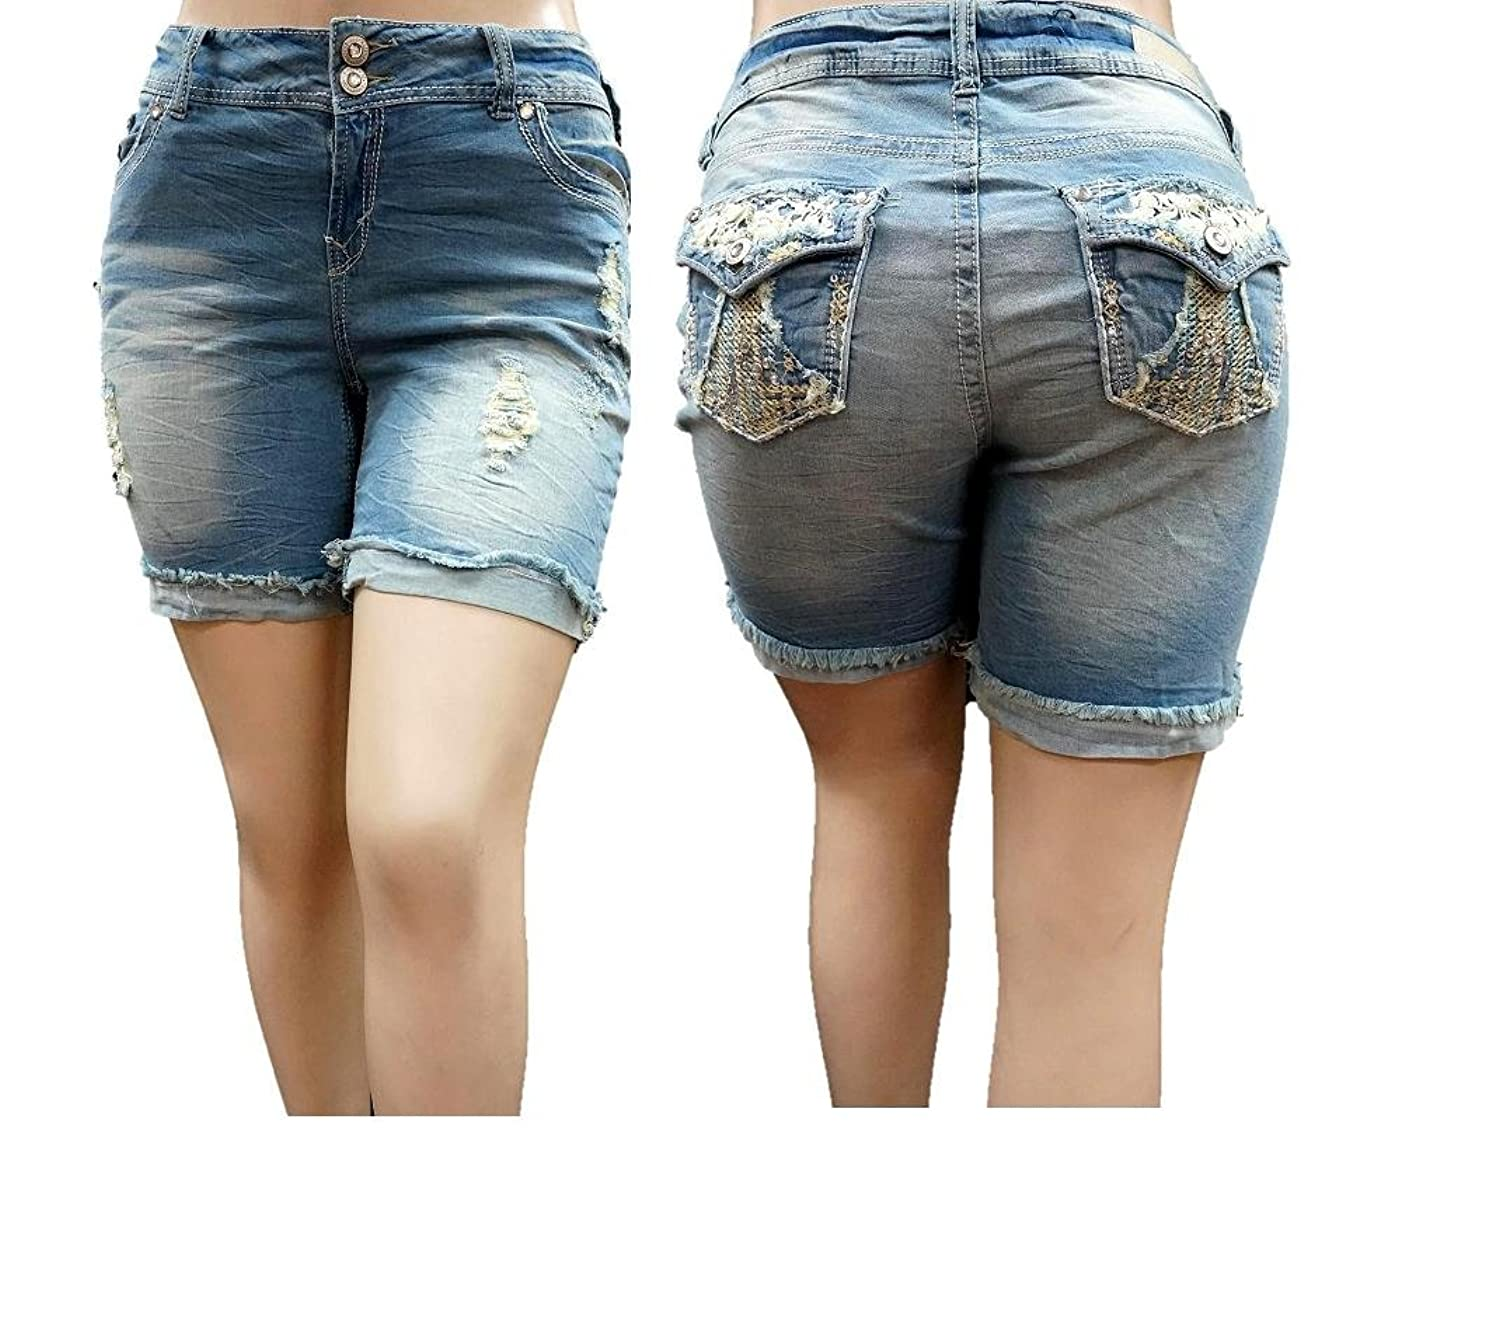 1826 Jeans Wf26 Women's Plus Size Destroy Short Stretch Distressed Ripped Blue Denim Jeans